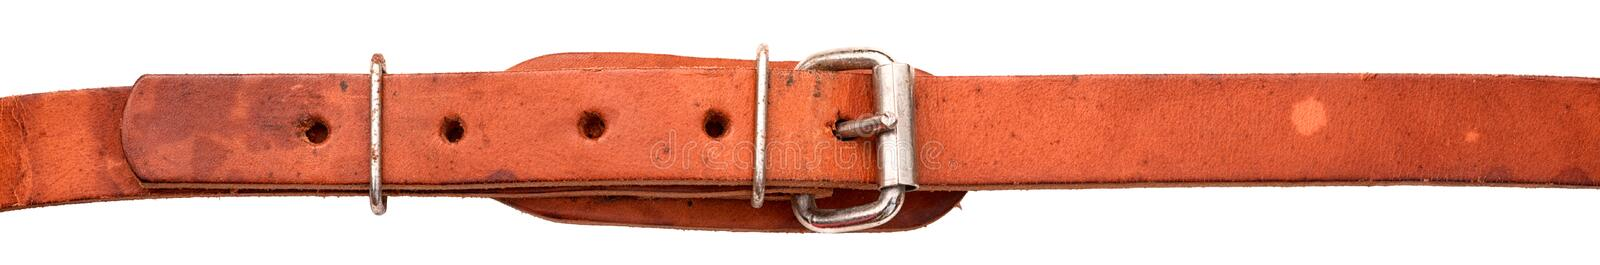 Old leather belt isolated stock images